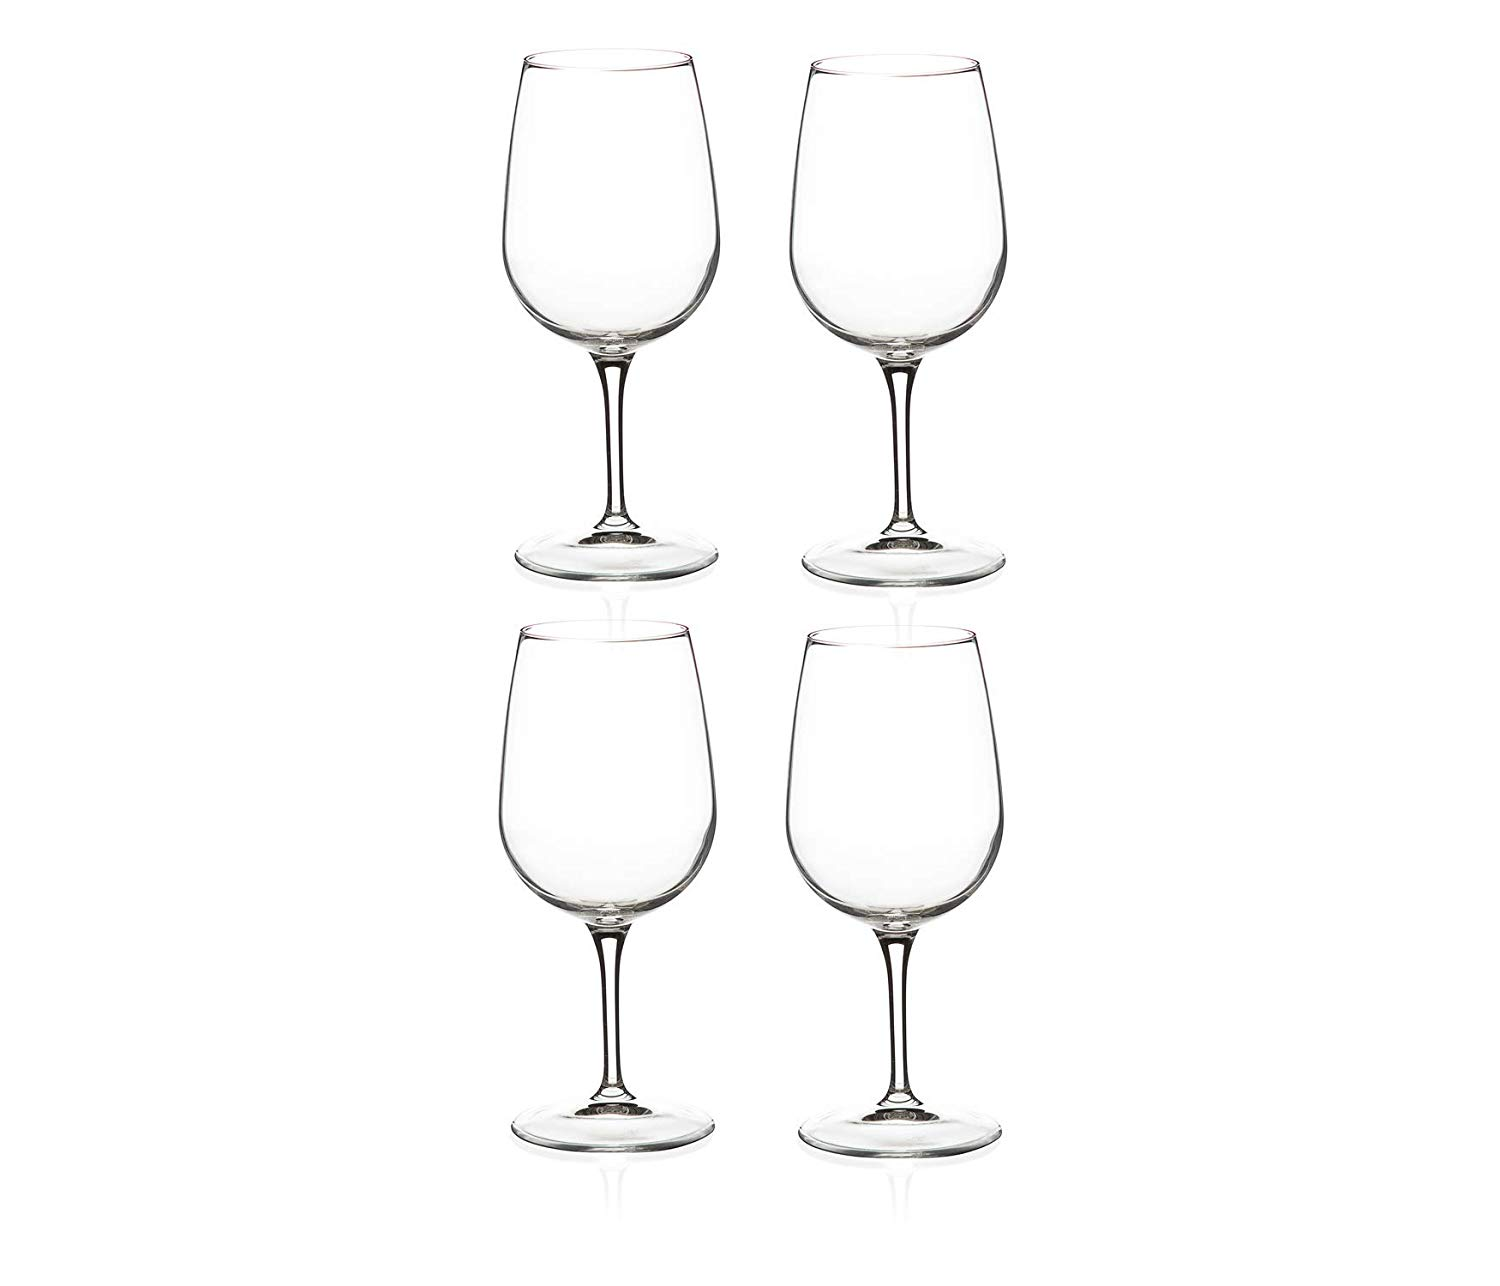 Spazio 13.5 oz. wine glass by bormioli rocco